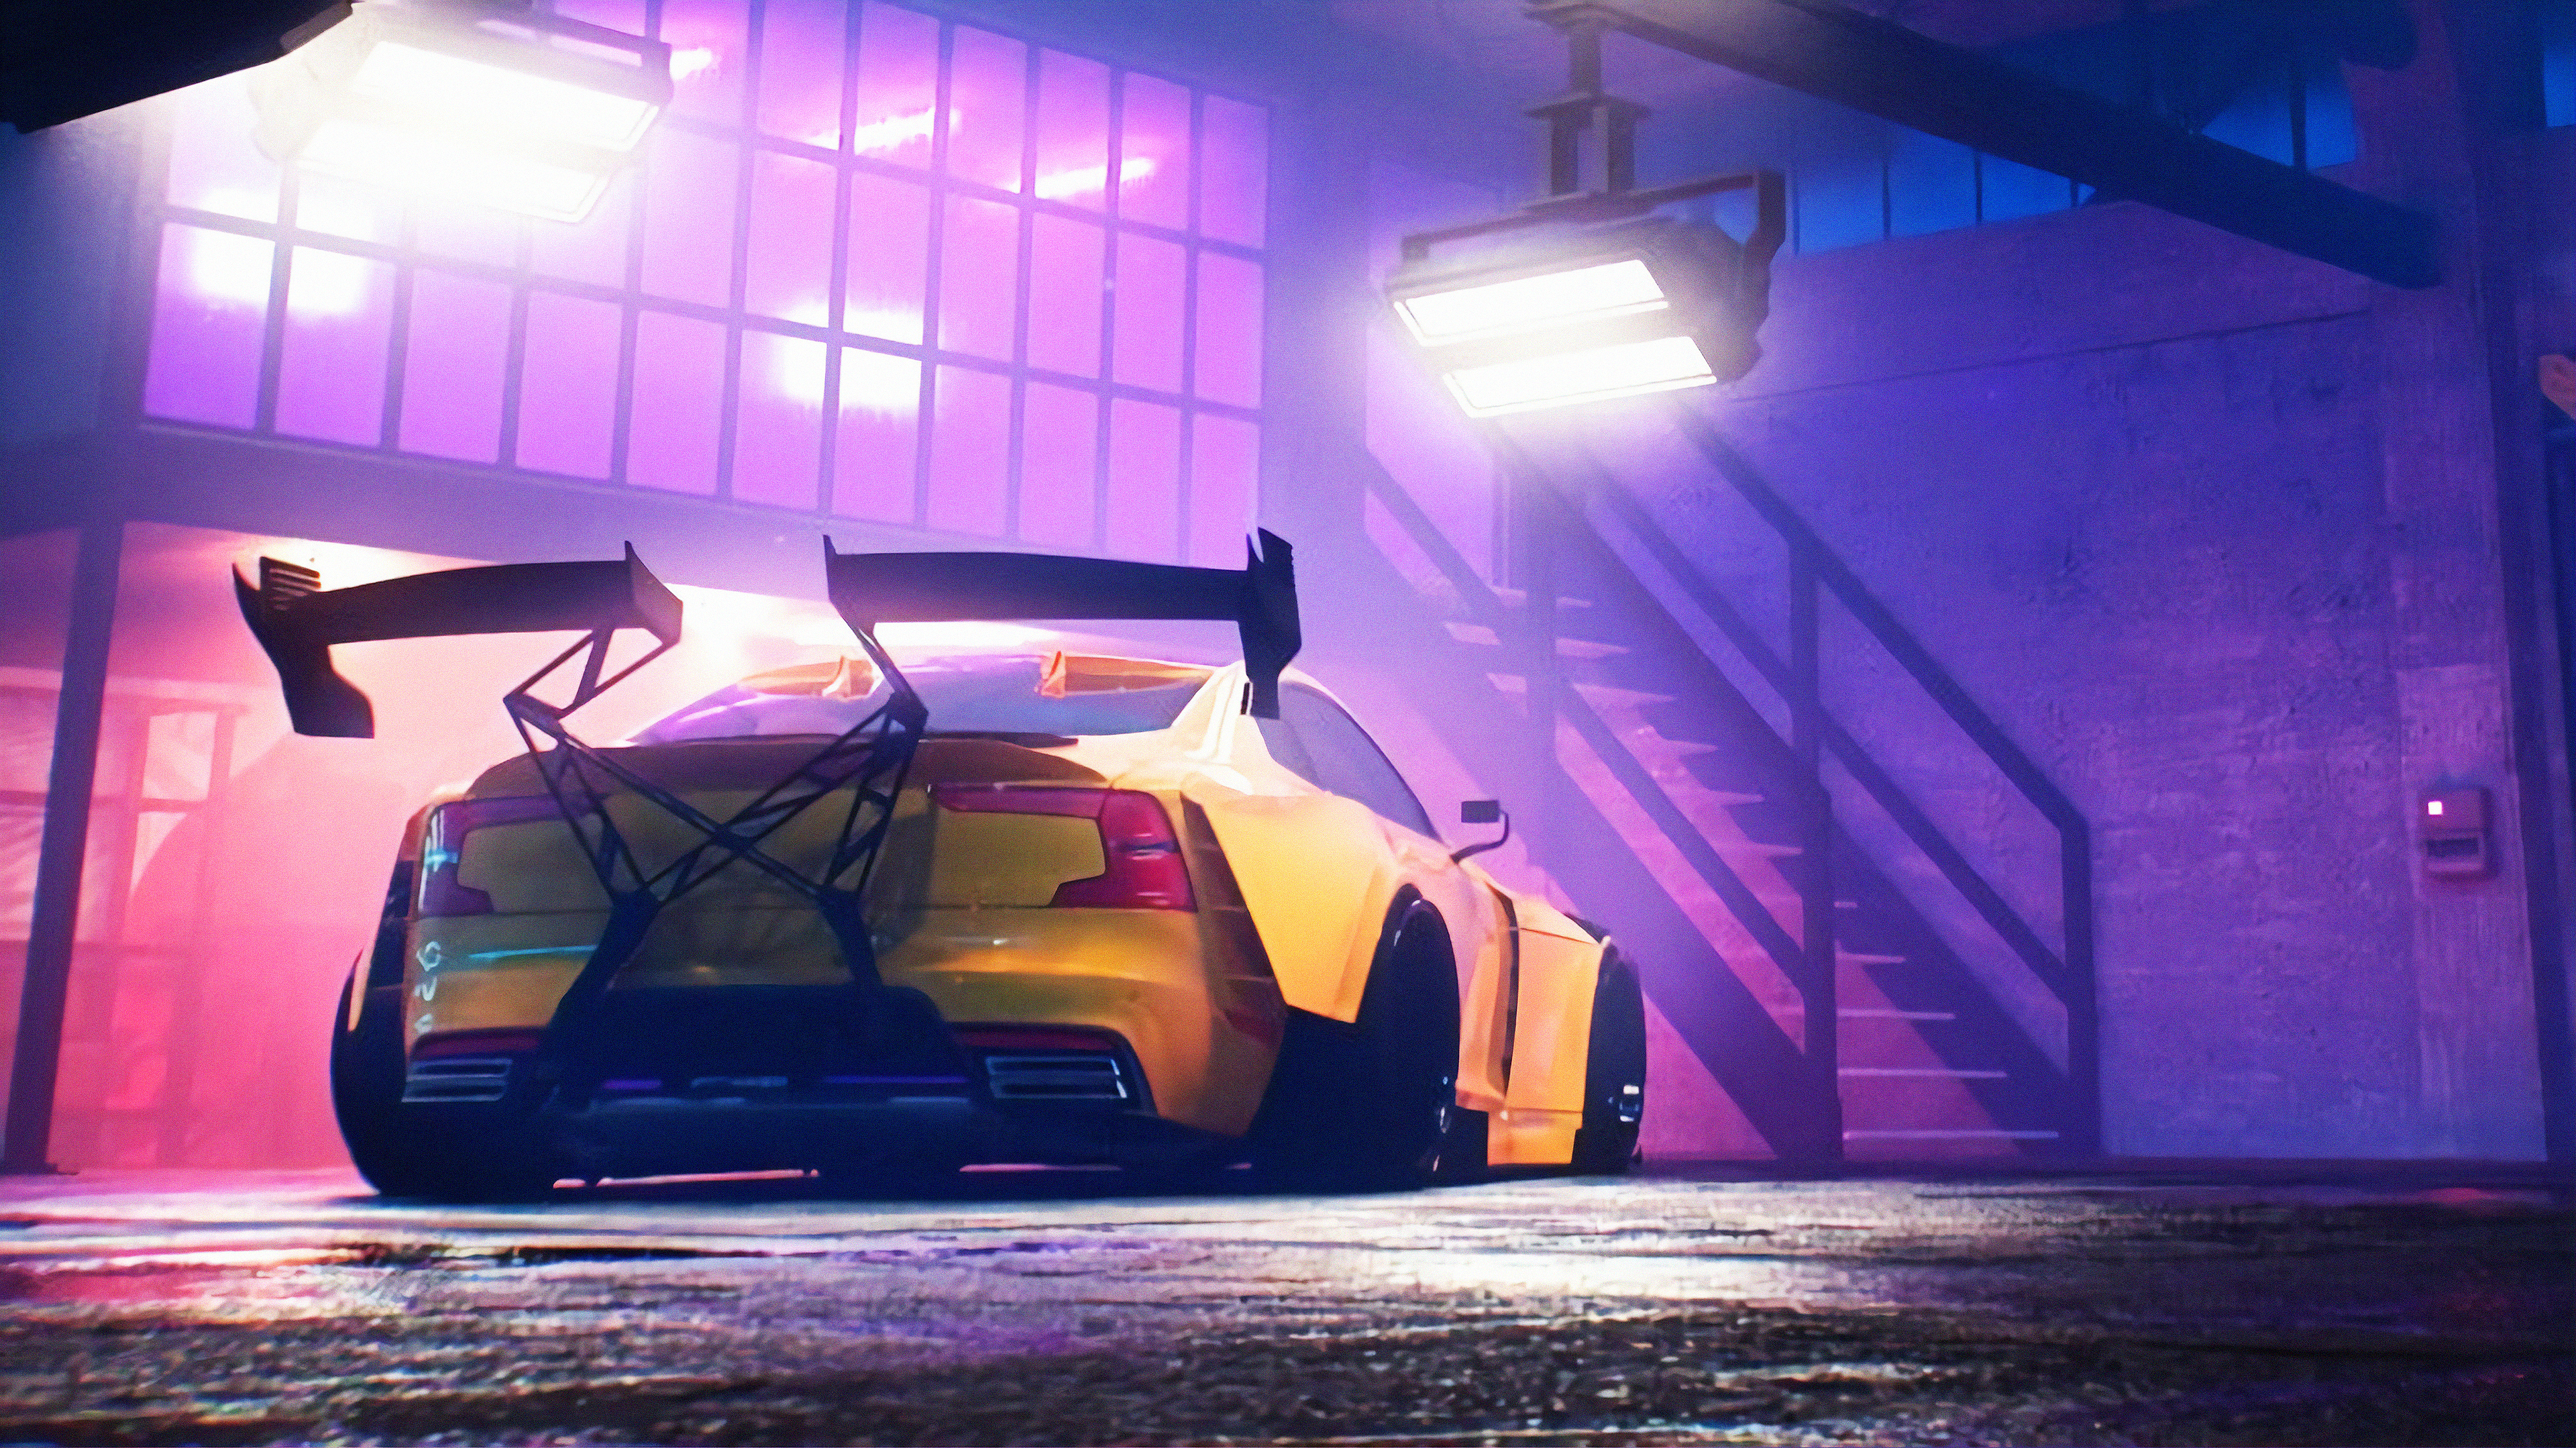 Nfs Heat 4k Hd Games 4k Wallpapers Images Backgrounds